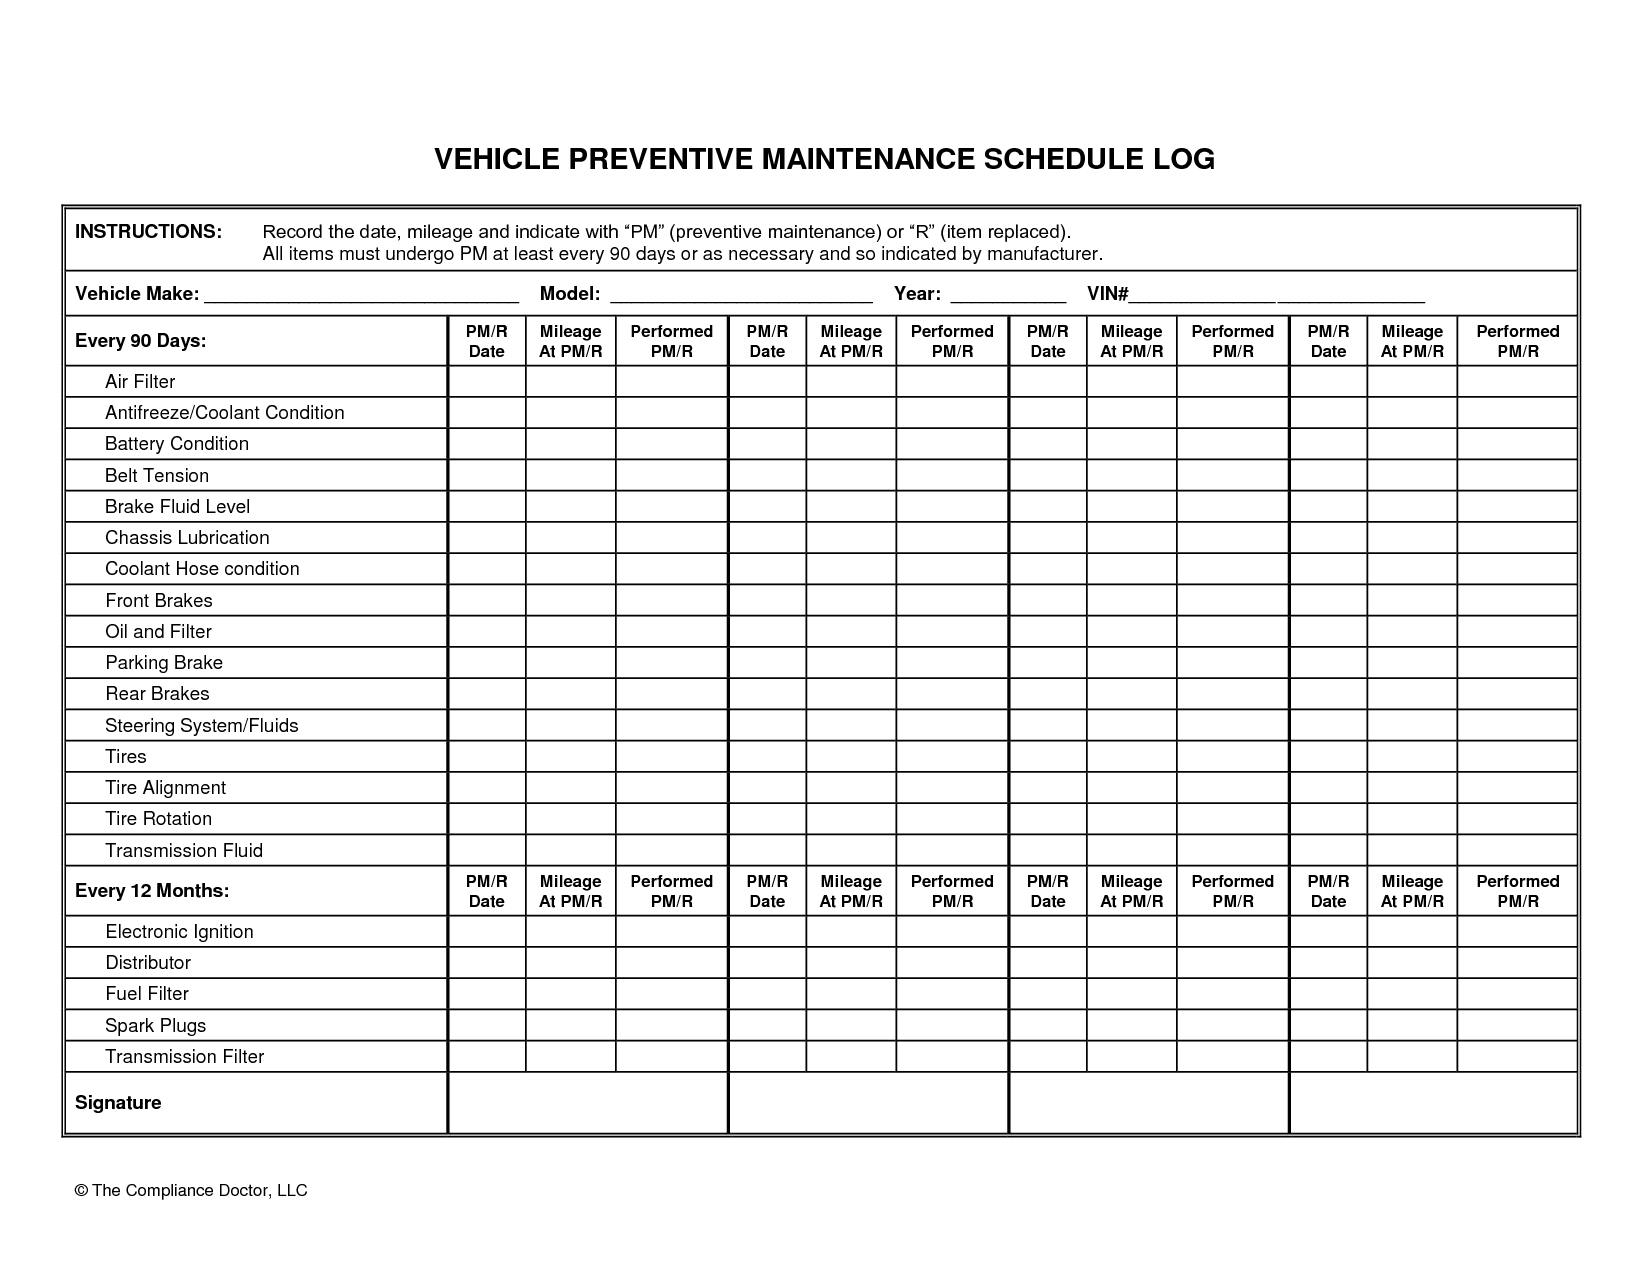 Vehicle Preventive Maintenance Schedule Log Automotive Wolf Car Software For Windows Computers Monitors Your